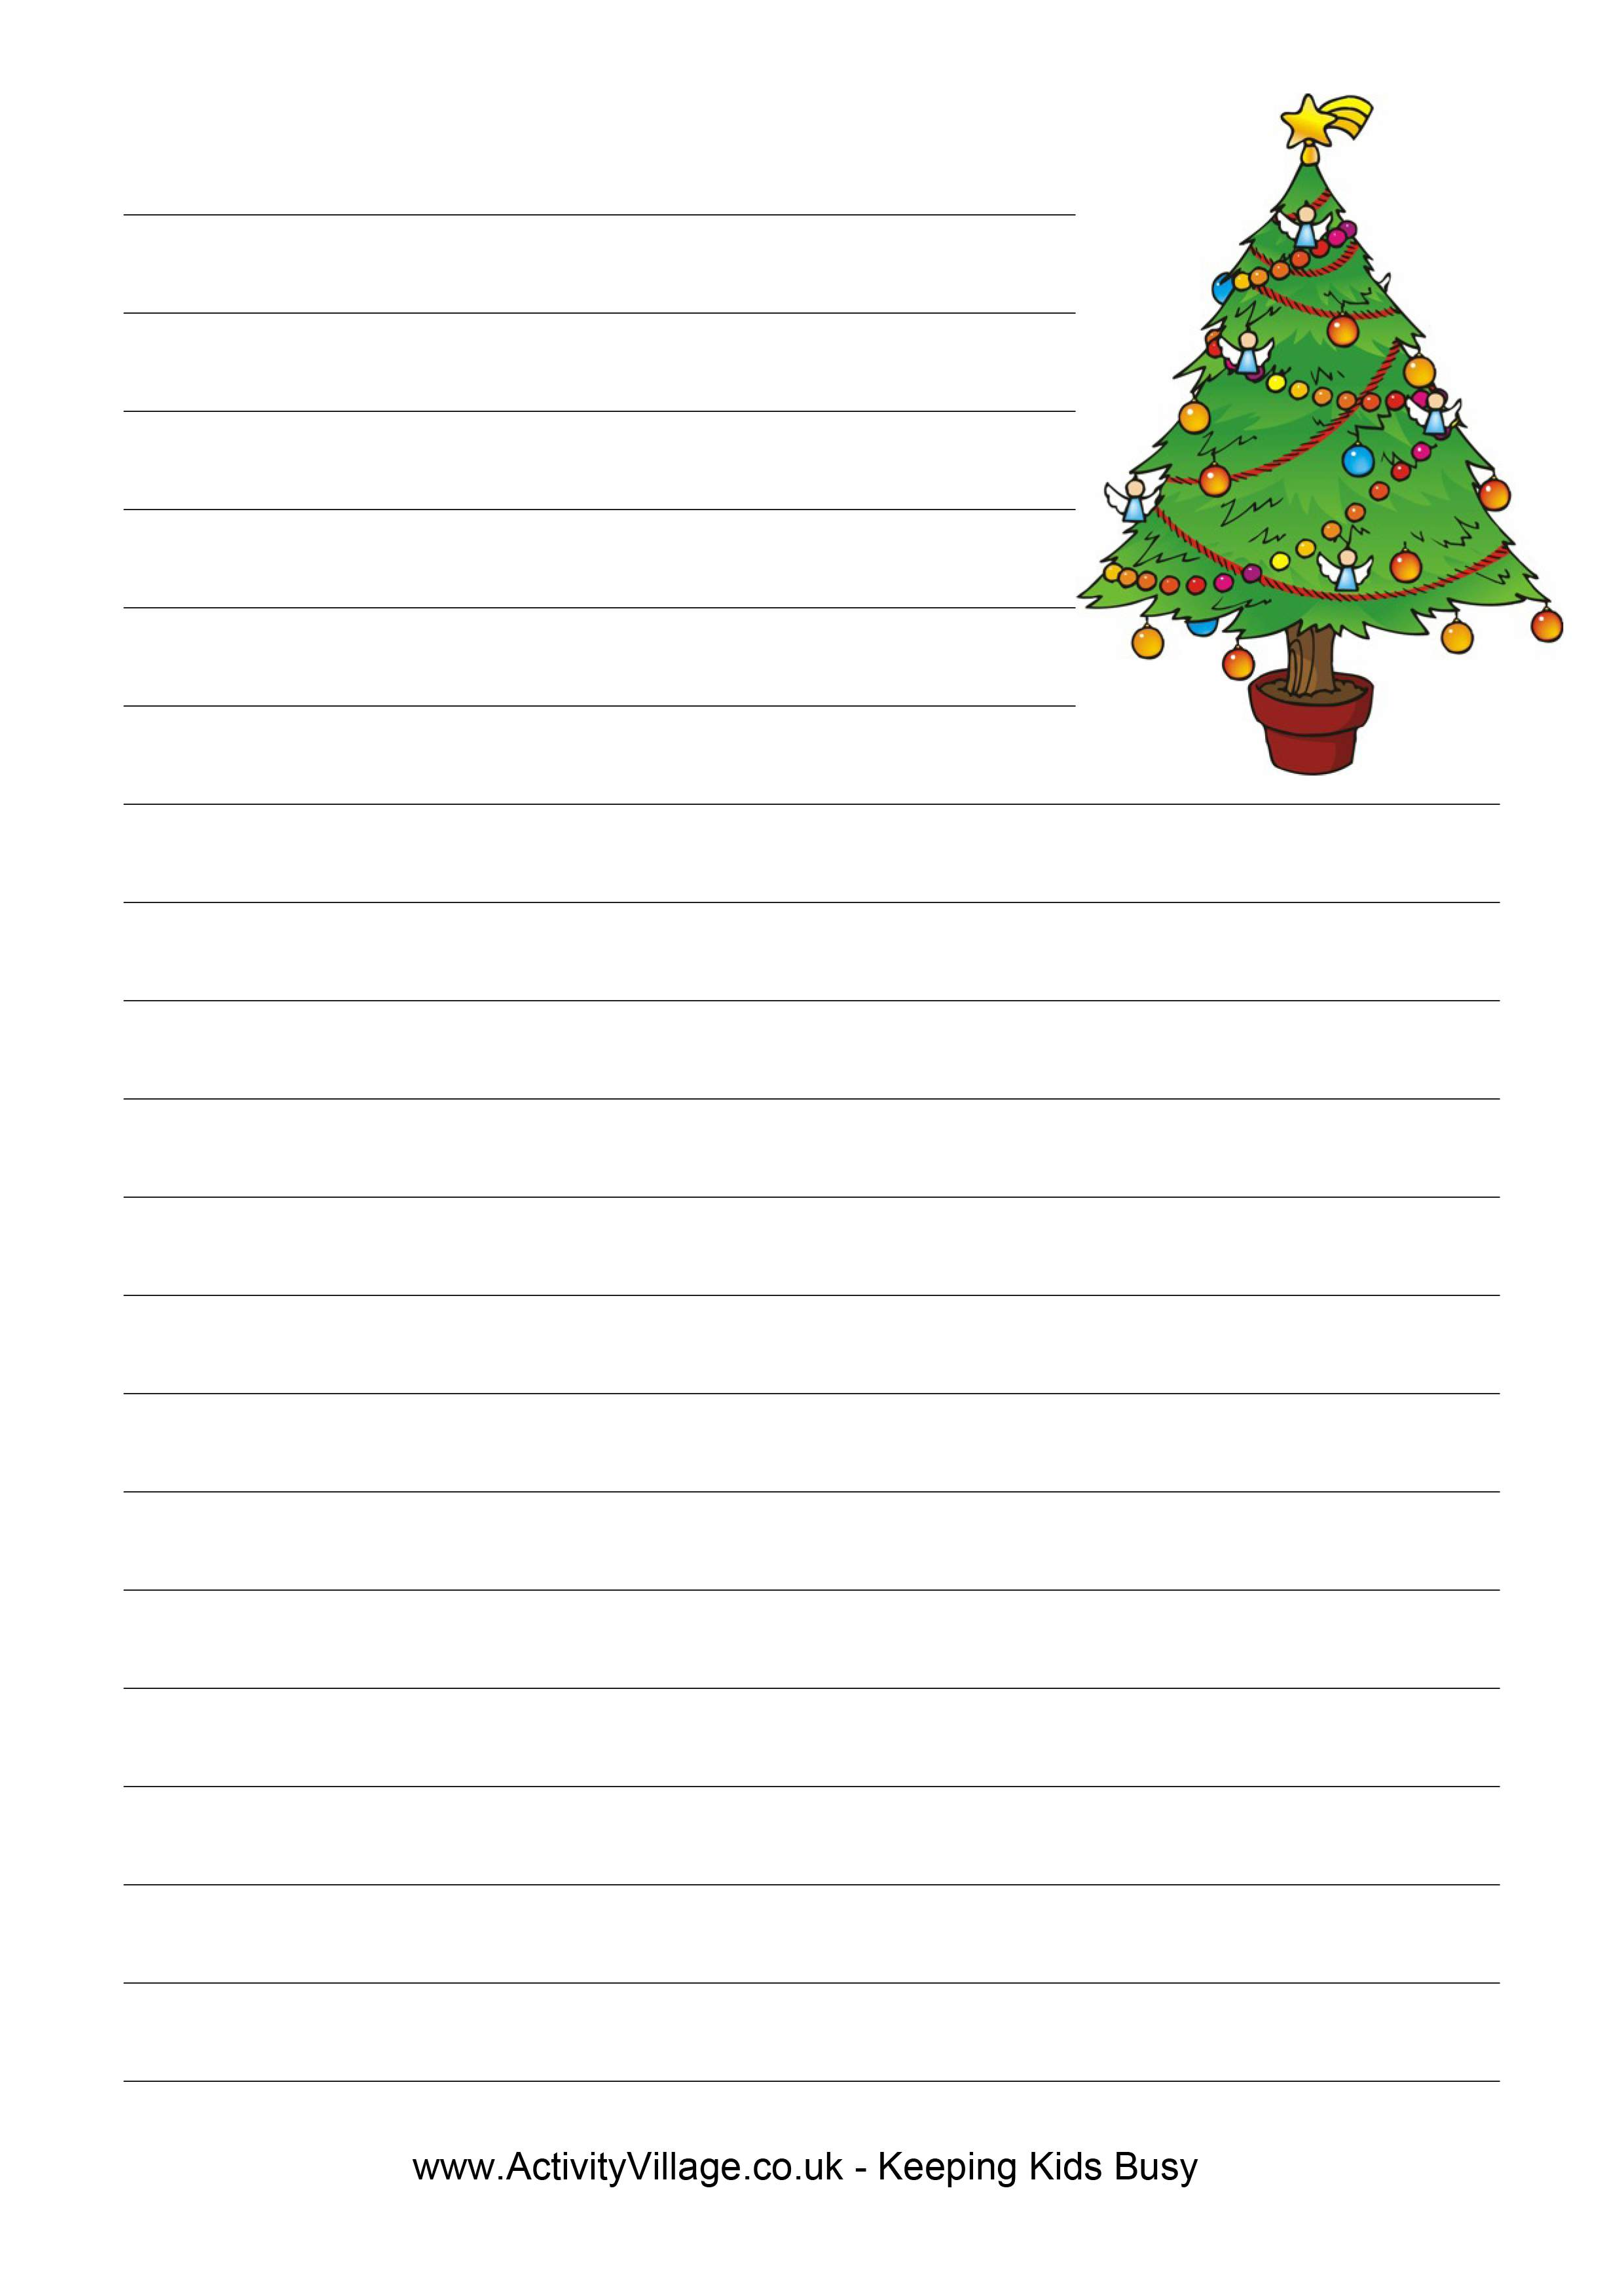 Tips for Writing Creative Christmas Letters